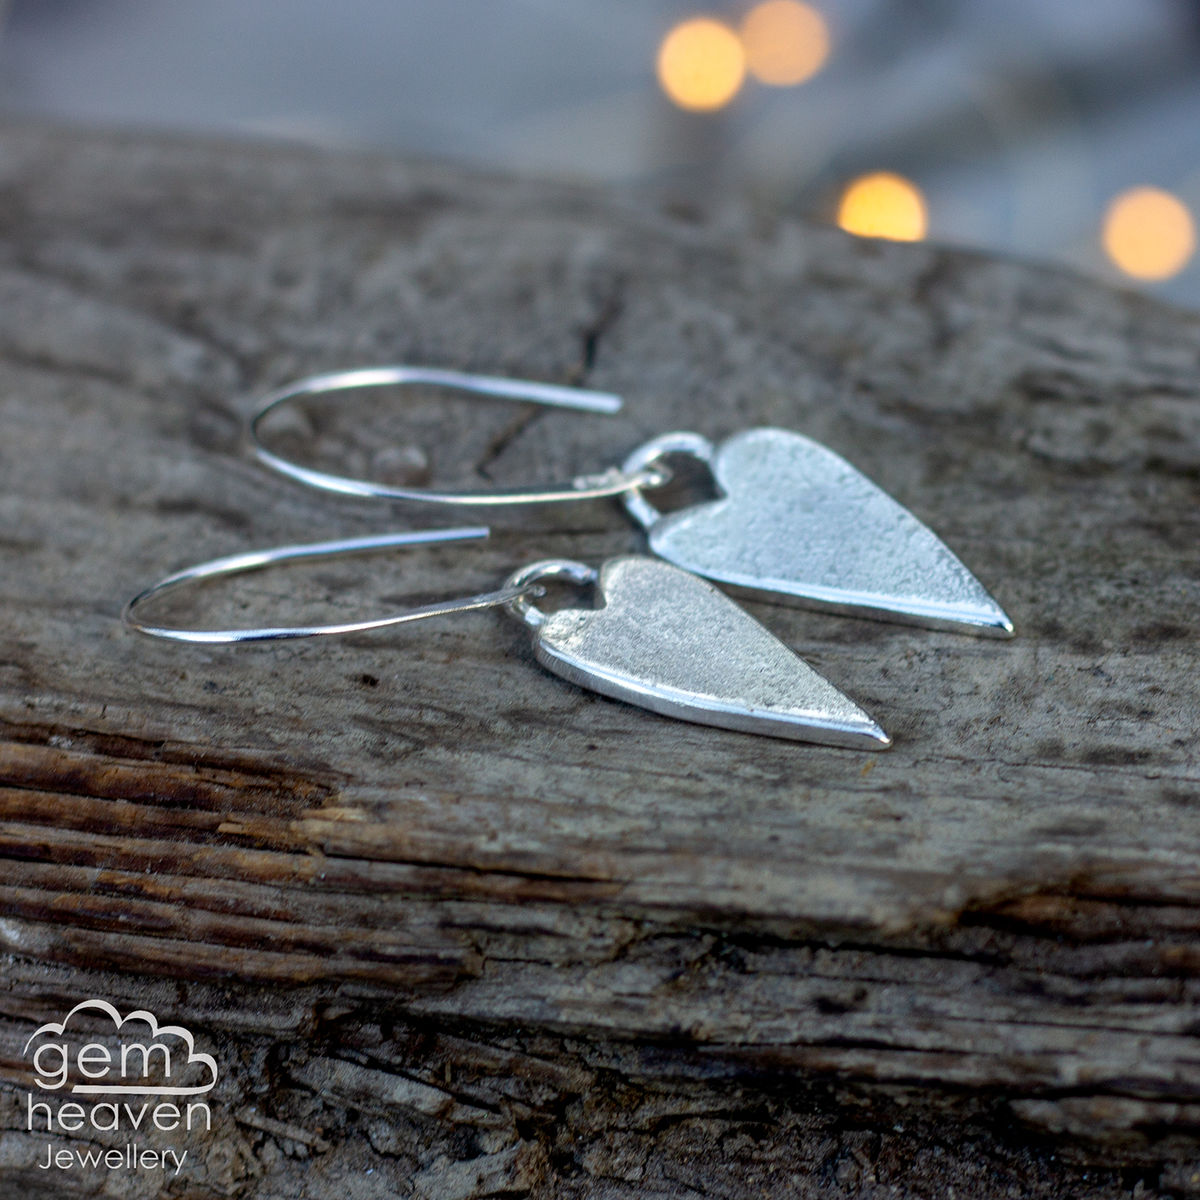 My Rustic Heart earrings - product images  of